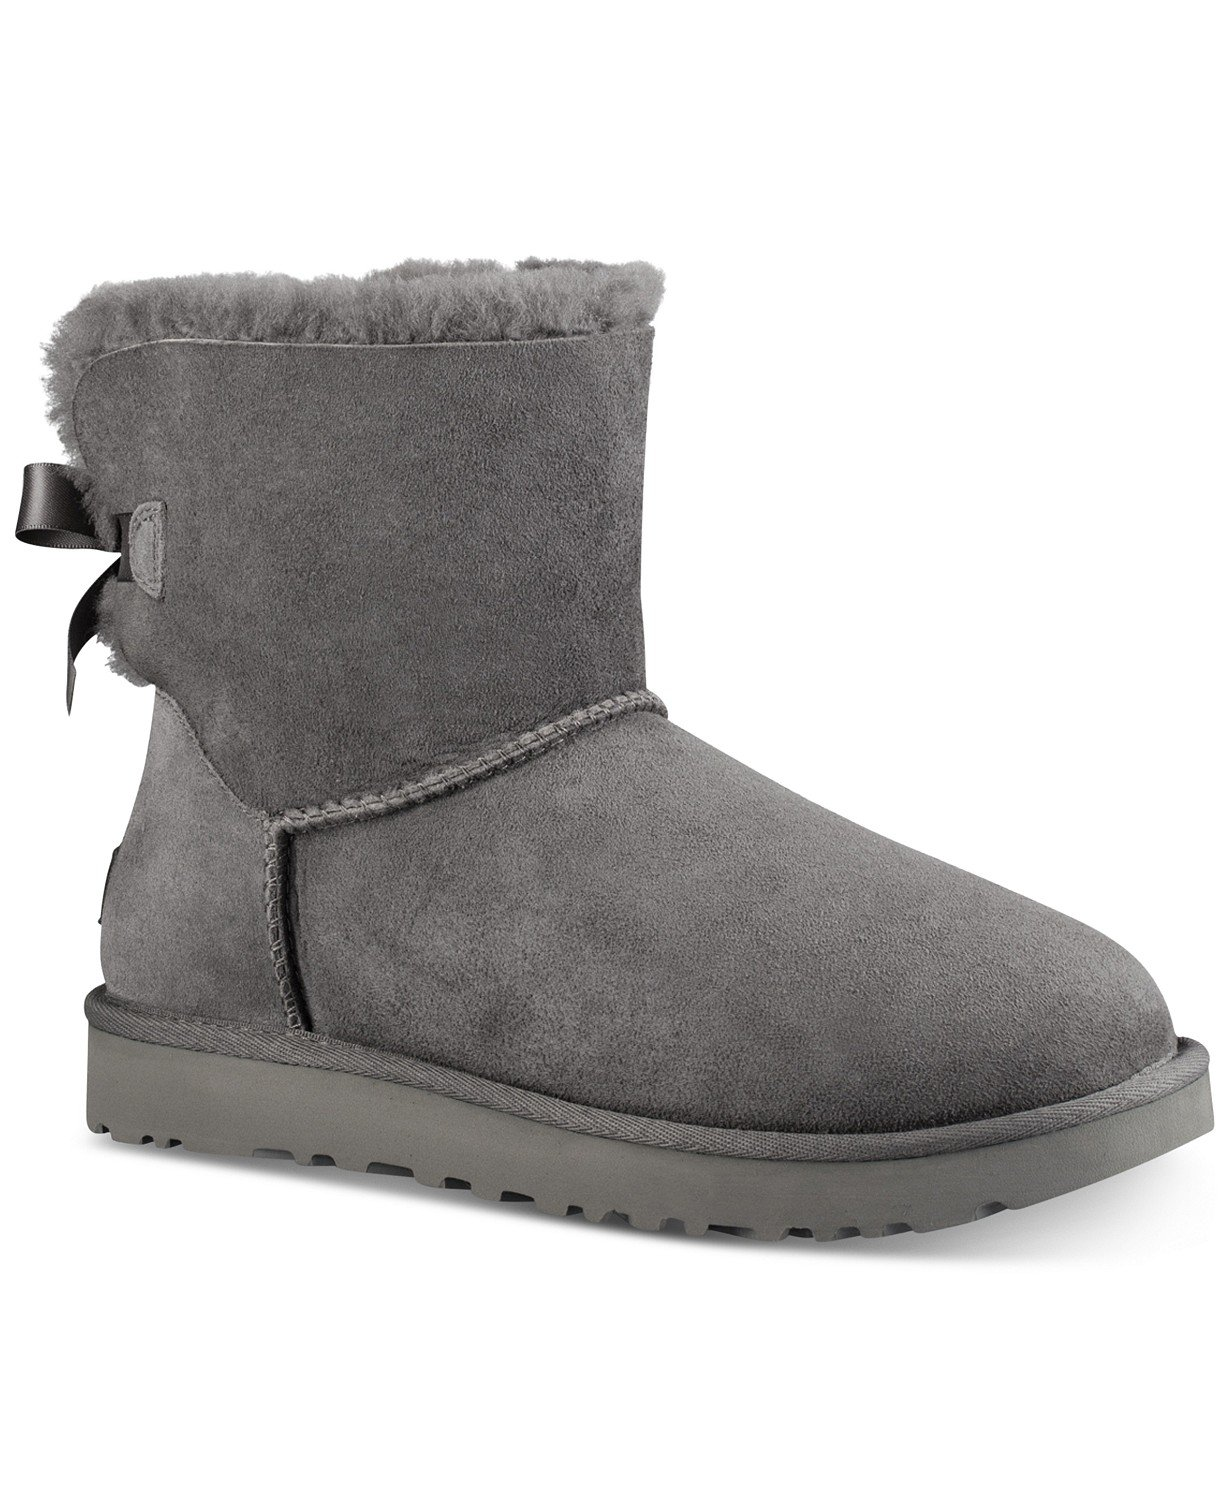 UGG® Women's Mini Bailey Bow II Boots & Reviews - Boots - Shoes - Macy's